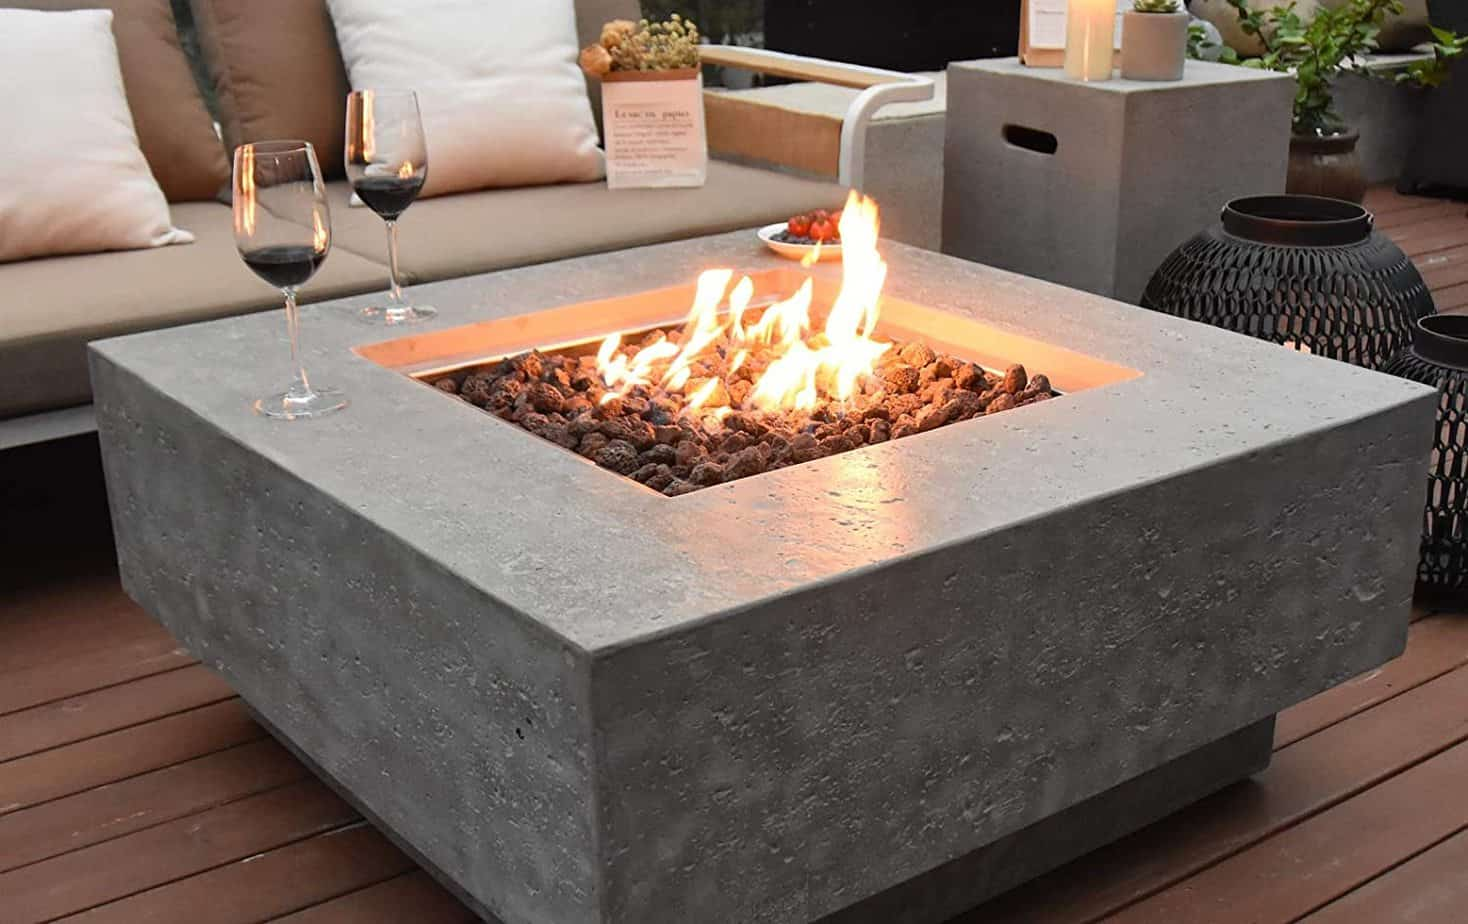 Stylish Fire Pit Tables For Your Outdoor Patio Or Deck Suburbs 101